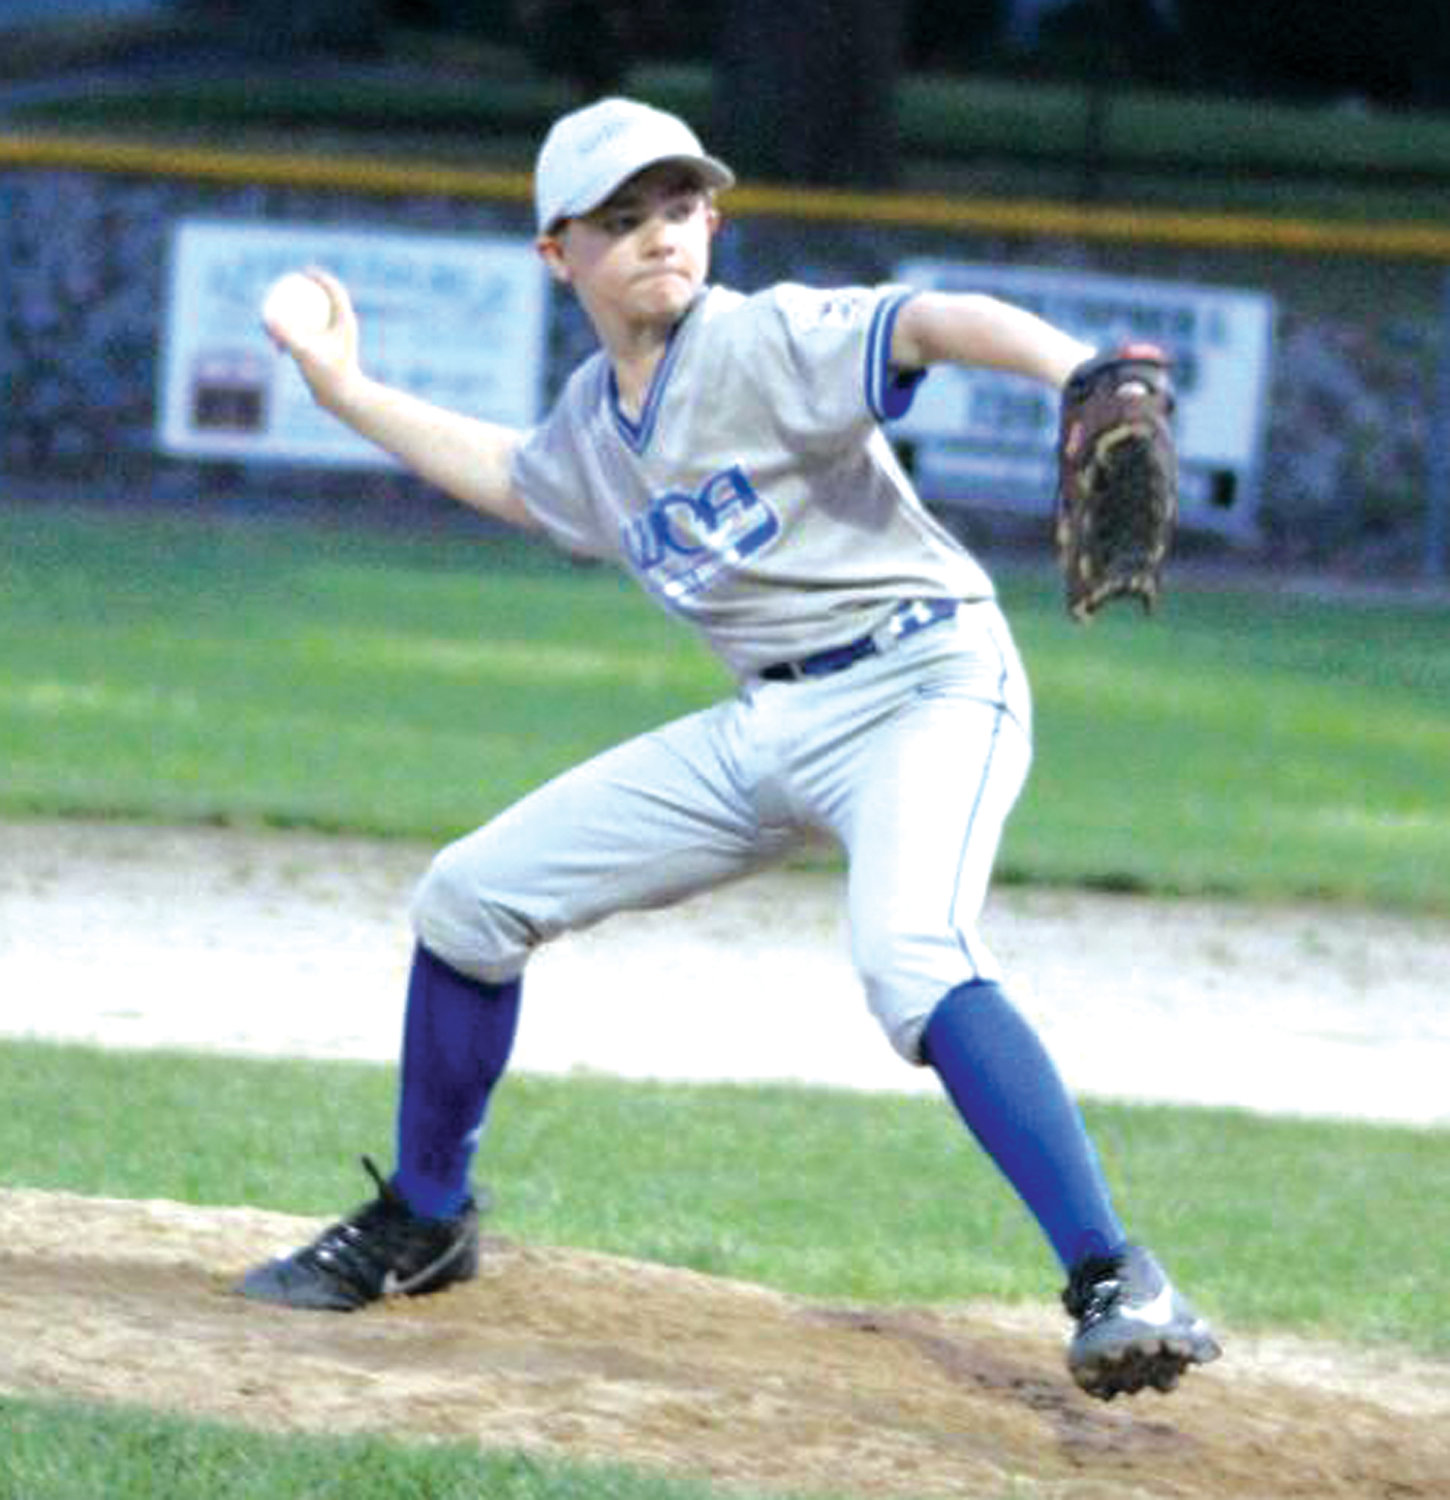 DEALING: Warwick Continental's Zack LaBonte delivers against Apponaug.